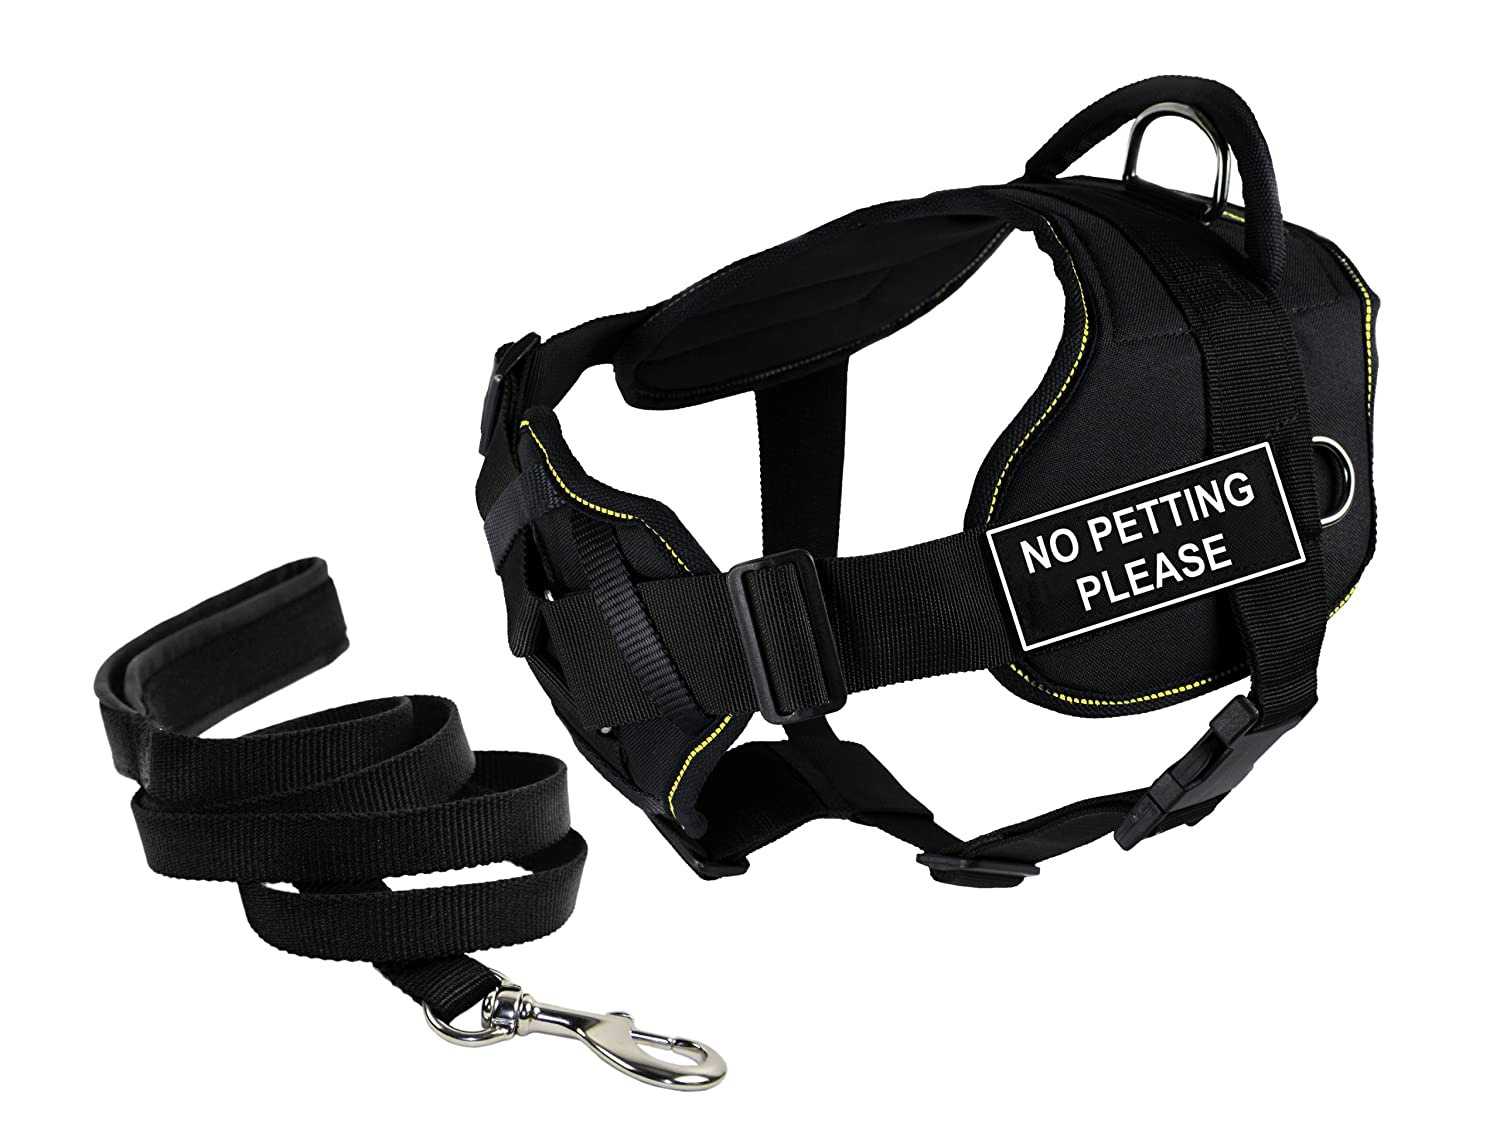 Dean & Tyler's DT Fun Chest Support NO PETTING PLEASE Harness, Large, with 6 ft Padded Puppy Leash.